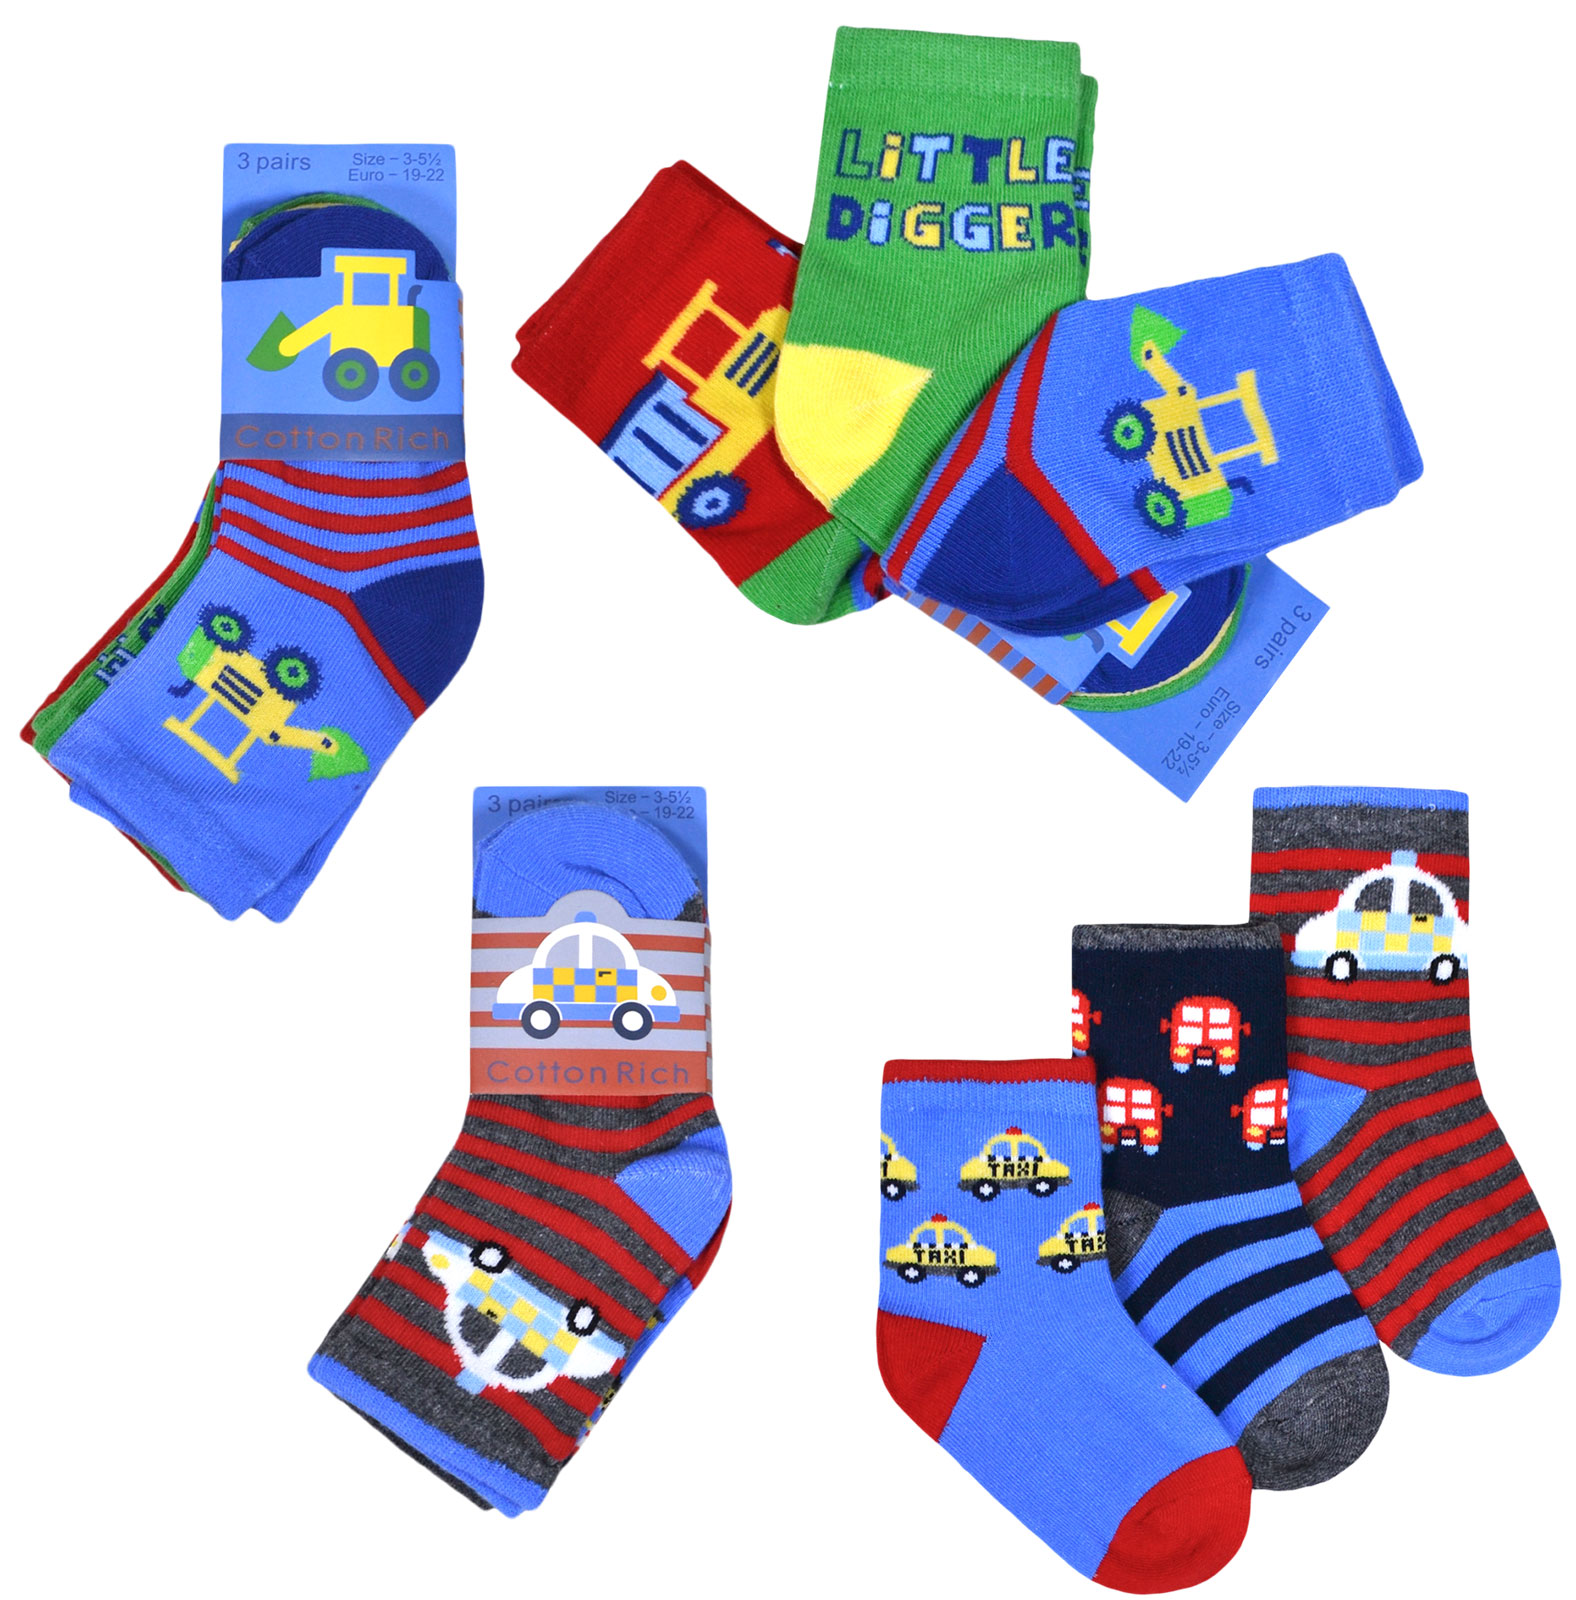 JollyRascals 5 Pairs Boys Socks New Kids Monday to Friday Socks Trainer Sports Cotton Rich 5 PACK Socks Black Red Green Blue Orange Yellow UK Sizes 6-8.5 9-12 12.5-3.5 and 4-6